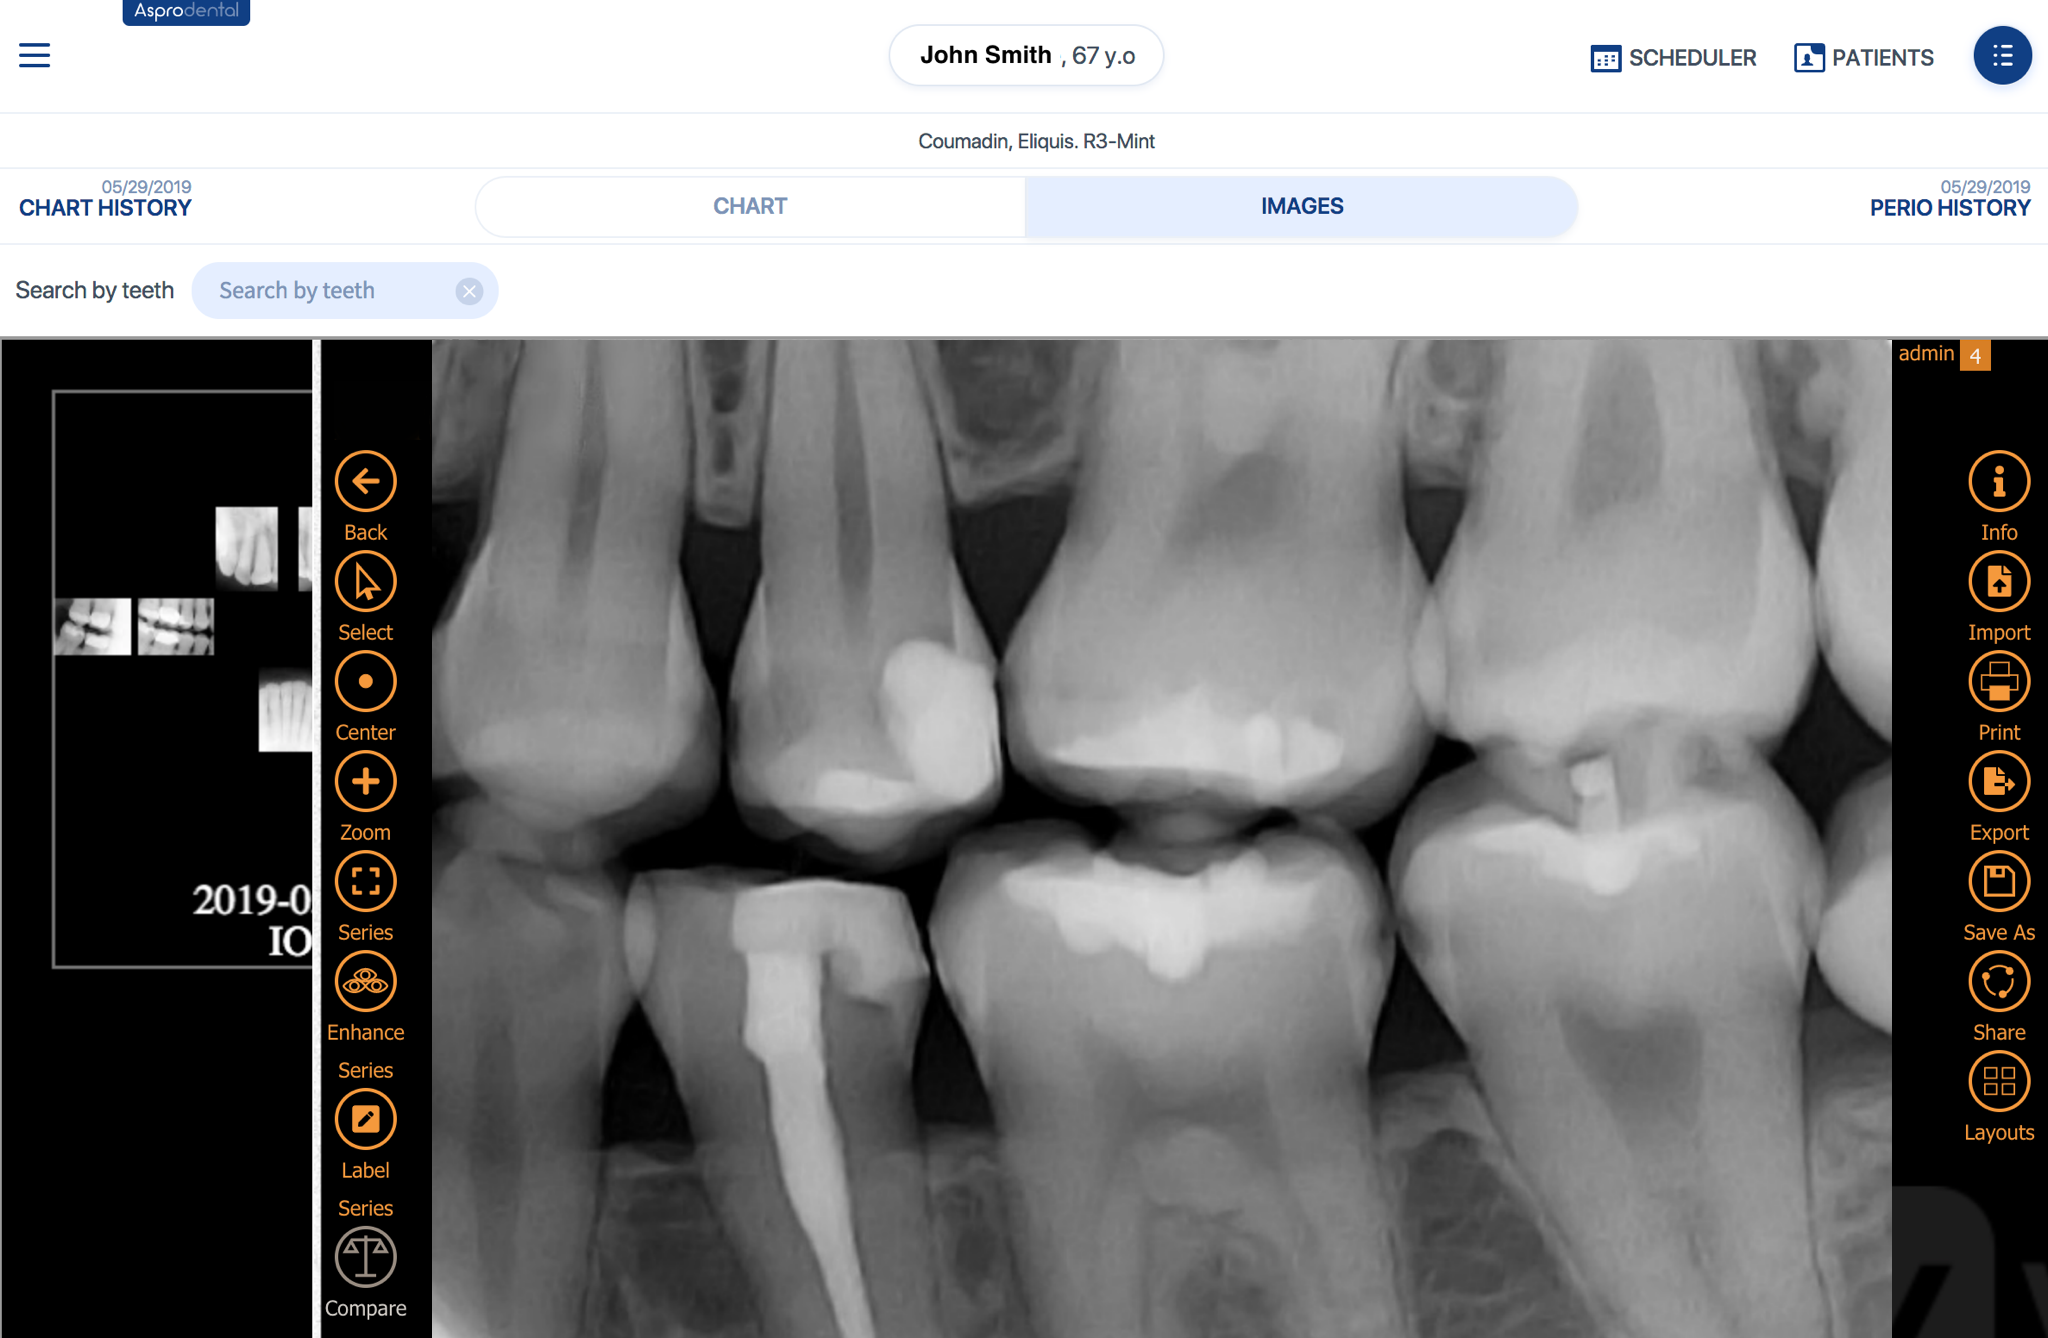 Clear, diagnostic x-rays - Capture and view your images immediately and upload to the cloud in the background. X-rays, intra-oral pictures, and cone beam images. It's all there, anywhere.